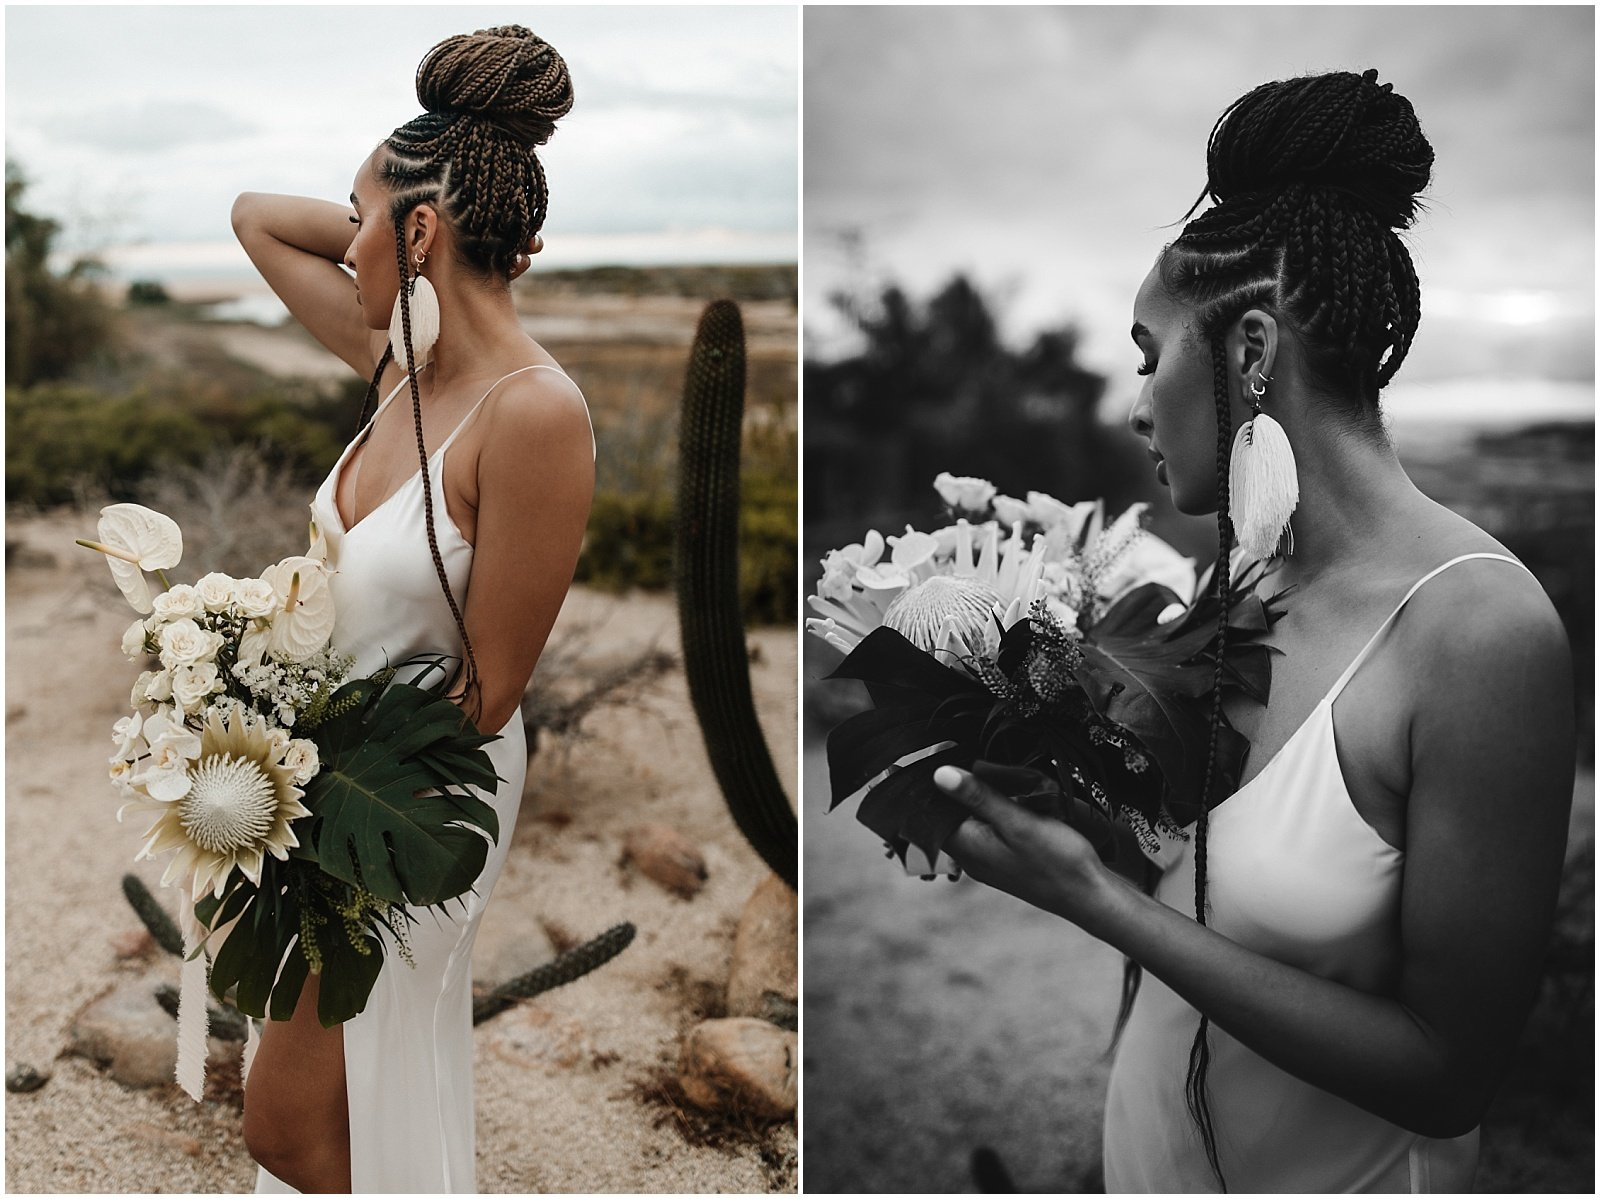 Bride holding a tropical bouquet of anthurium, orchids, protea, and palm leaves